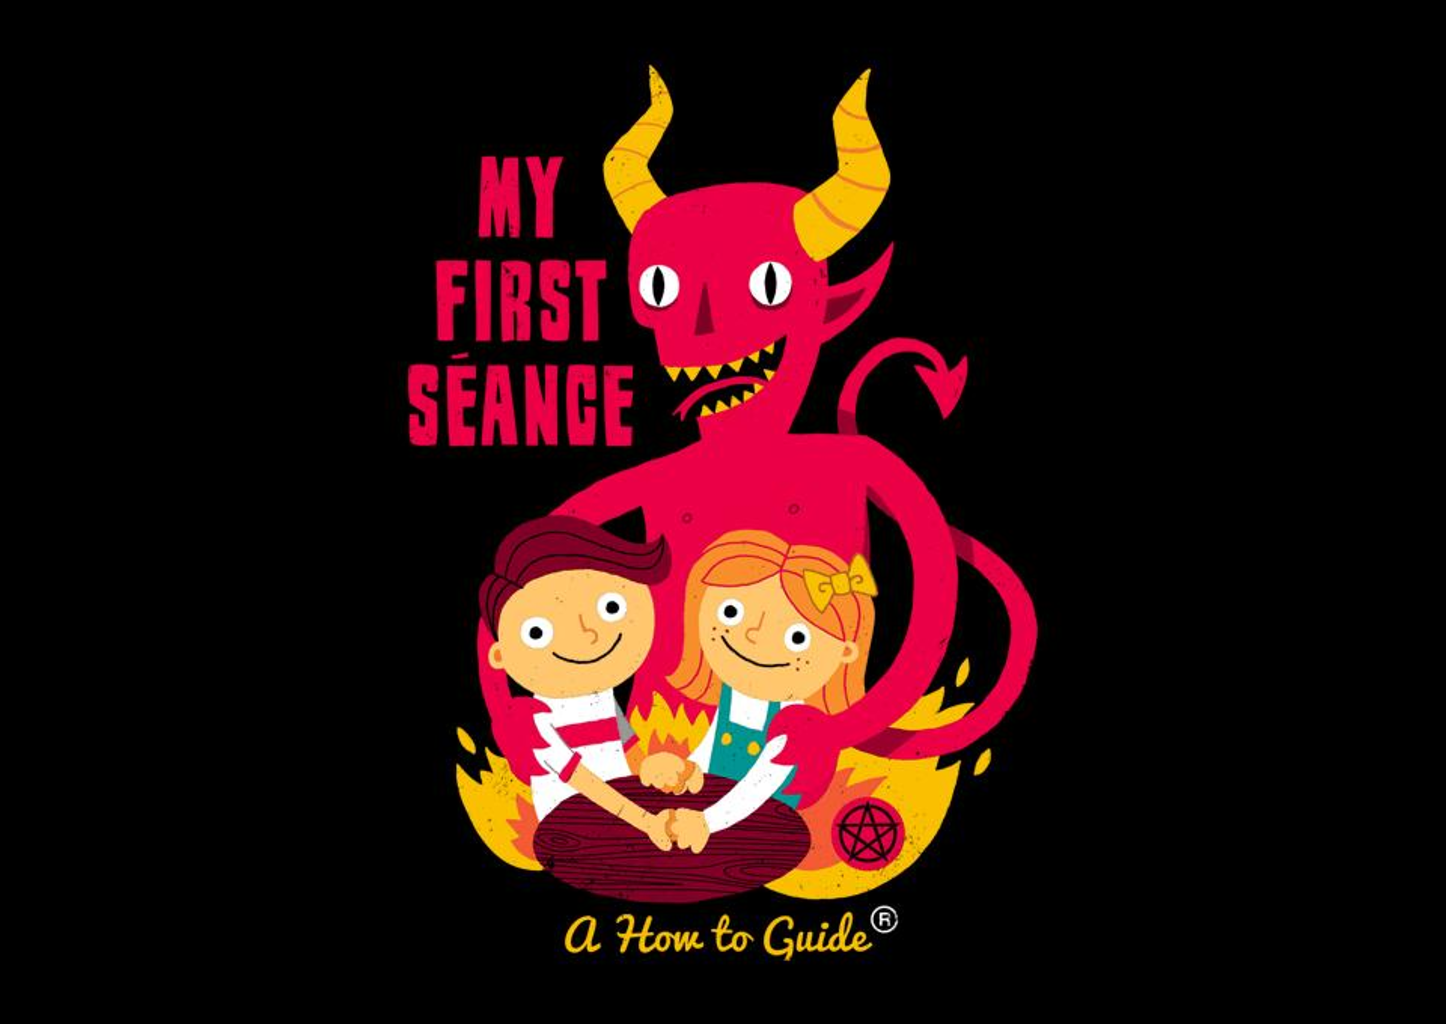 TeeFury: My First Seance